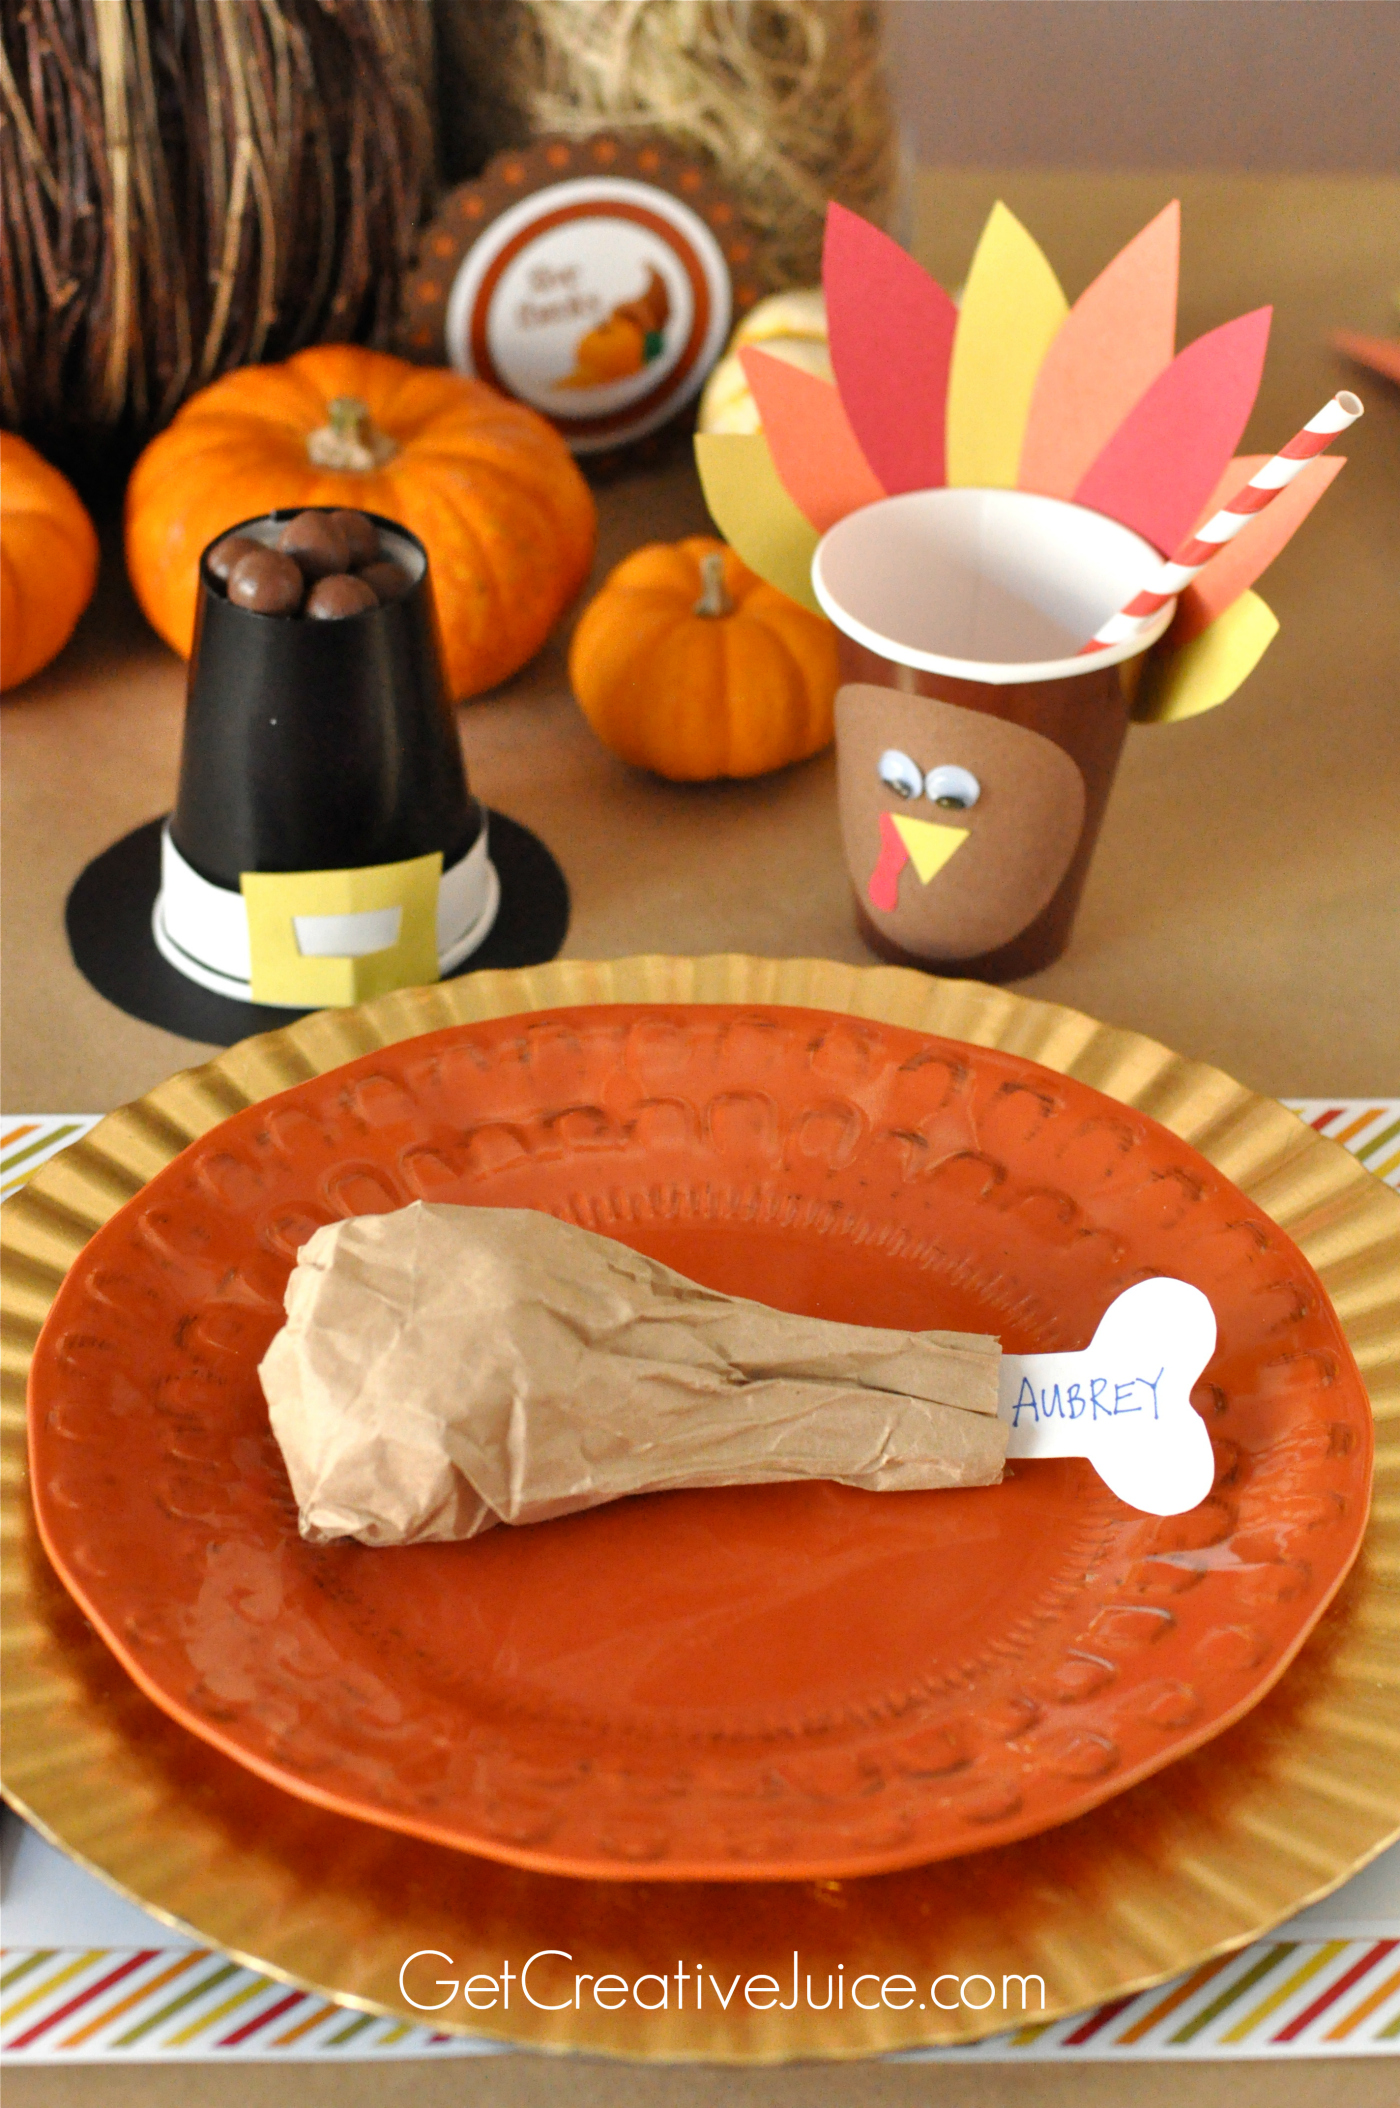 Easy diy kids thanksgiving table ideas creative juice Thanksgiving table decorations homemade